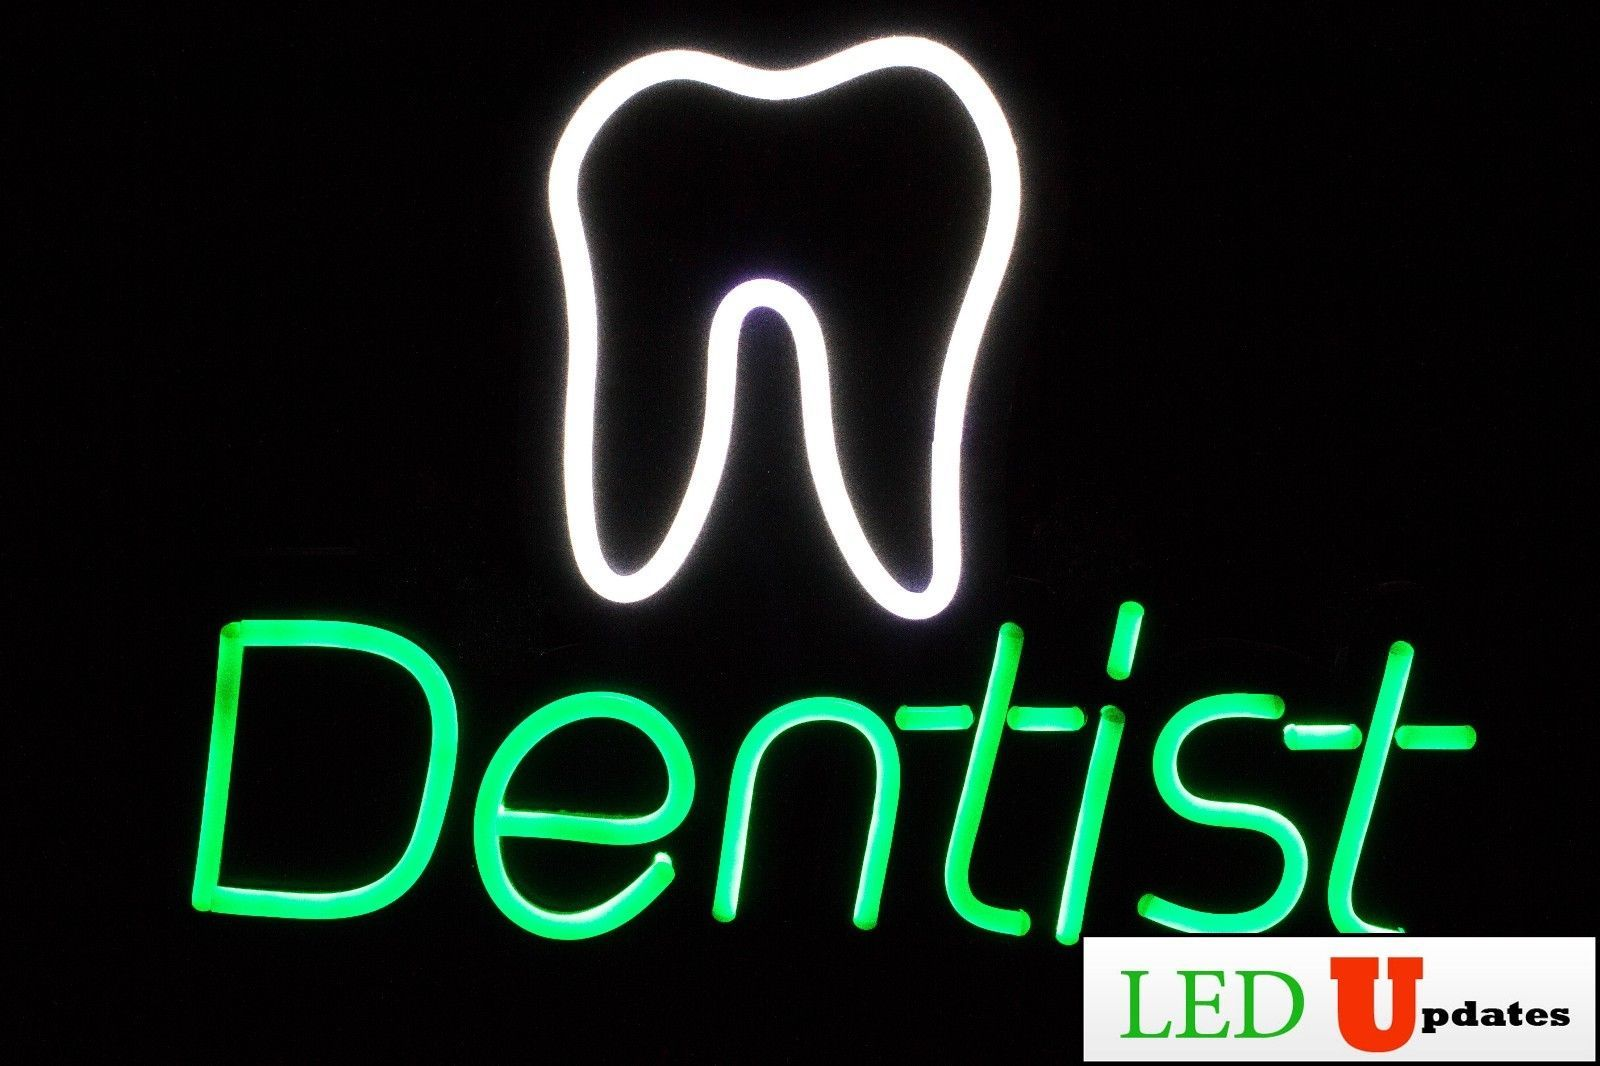 Ledupdates Dentist Led Sign With On Off Switch Ul Power